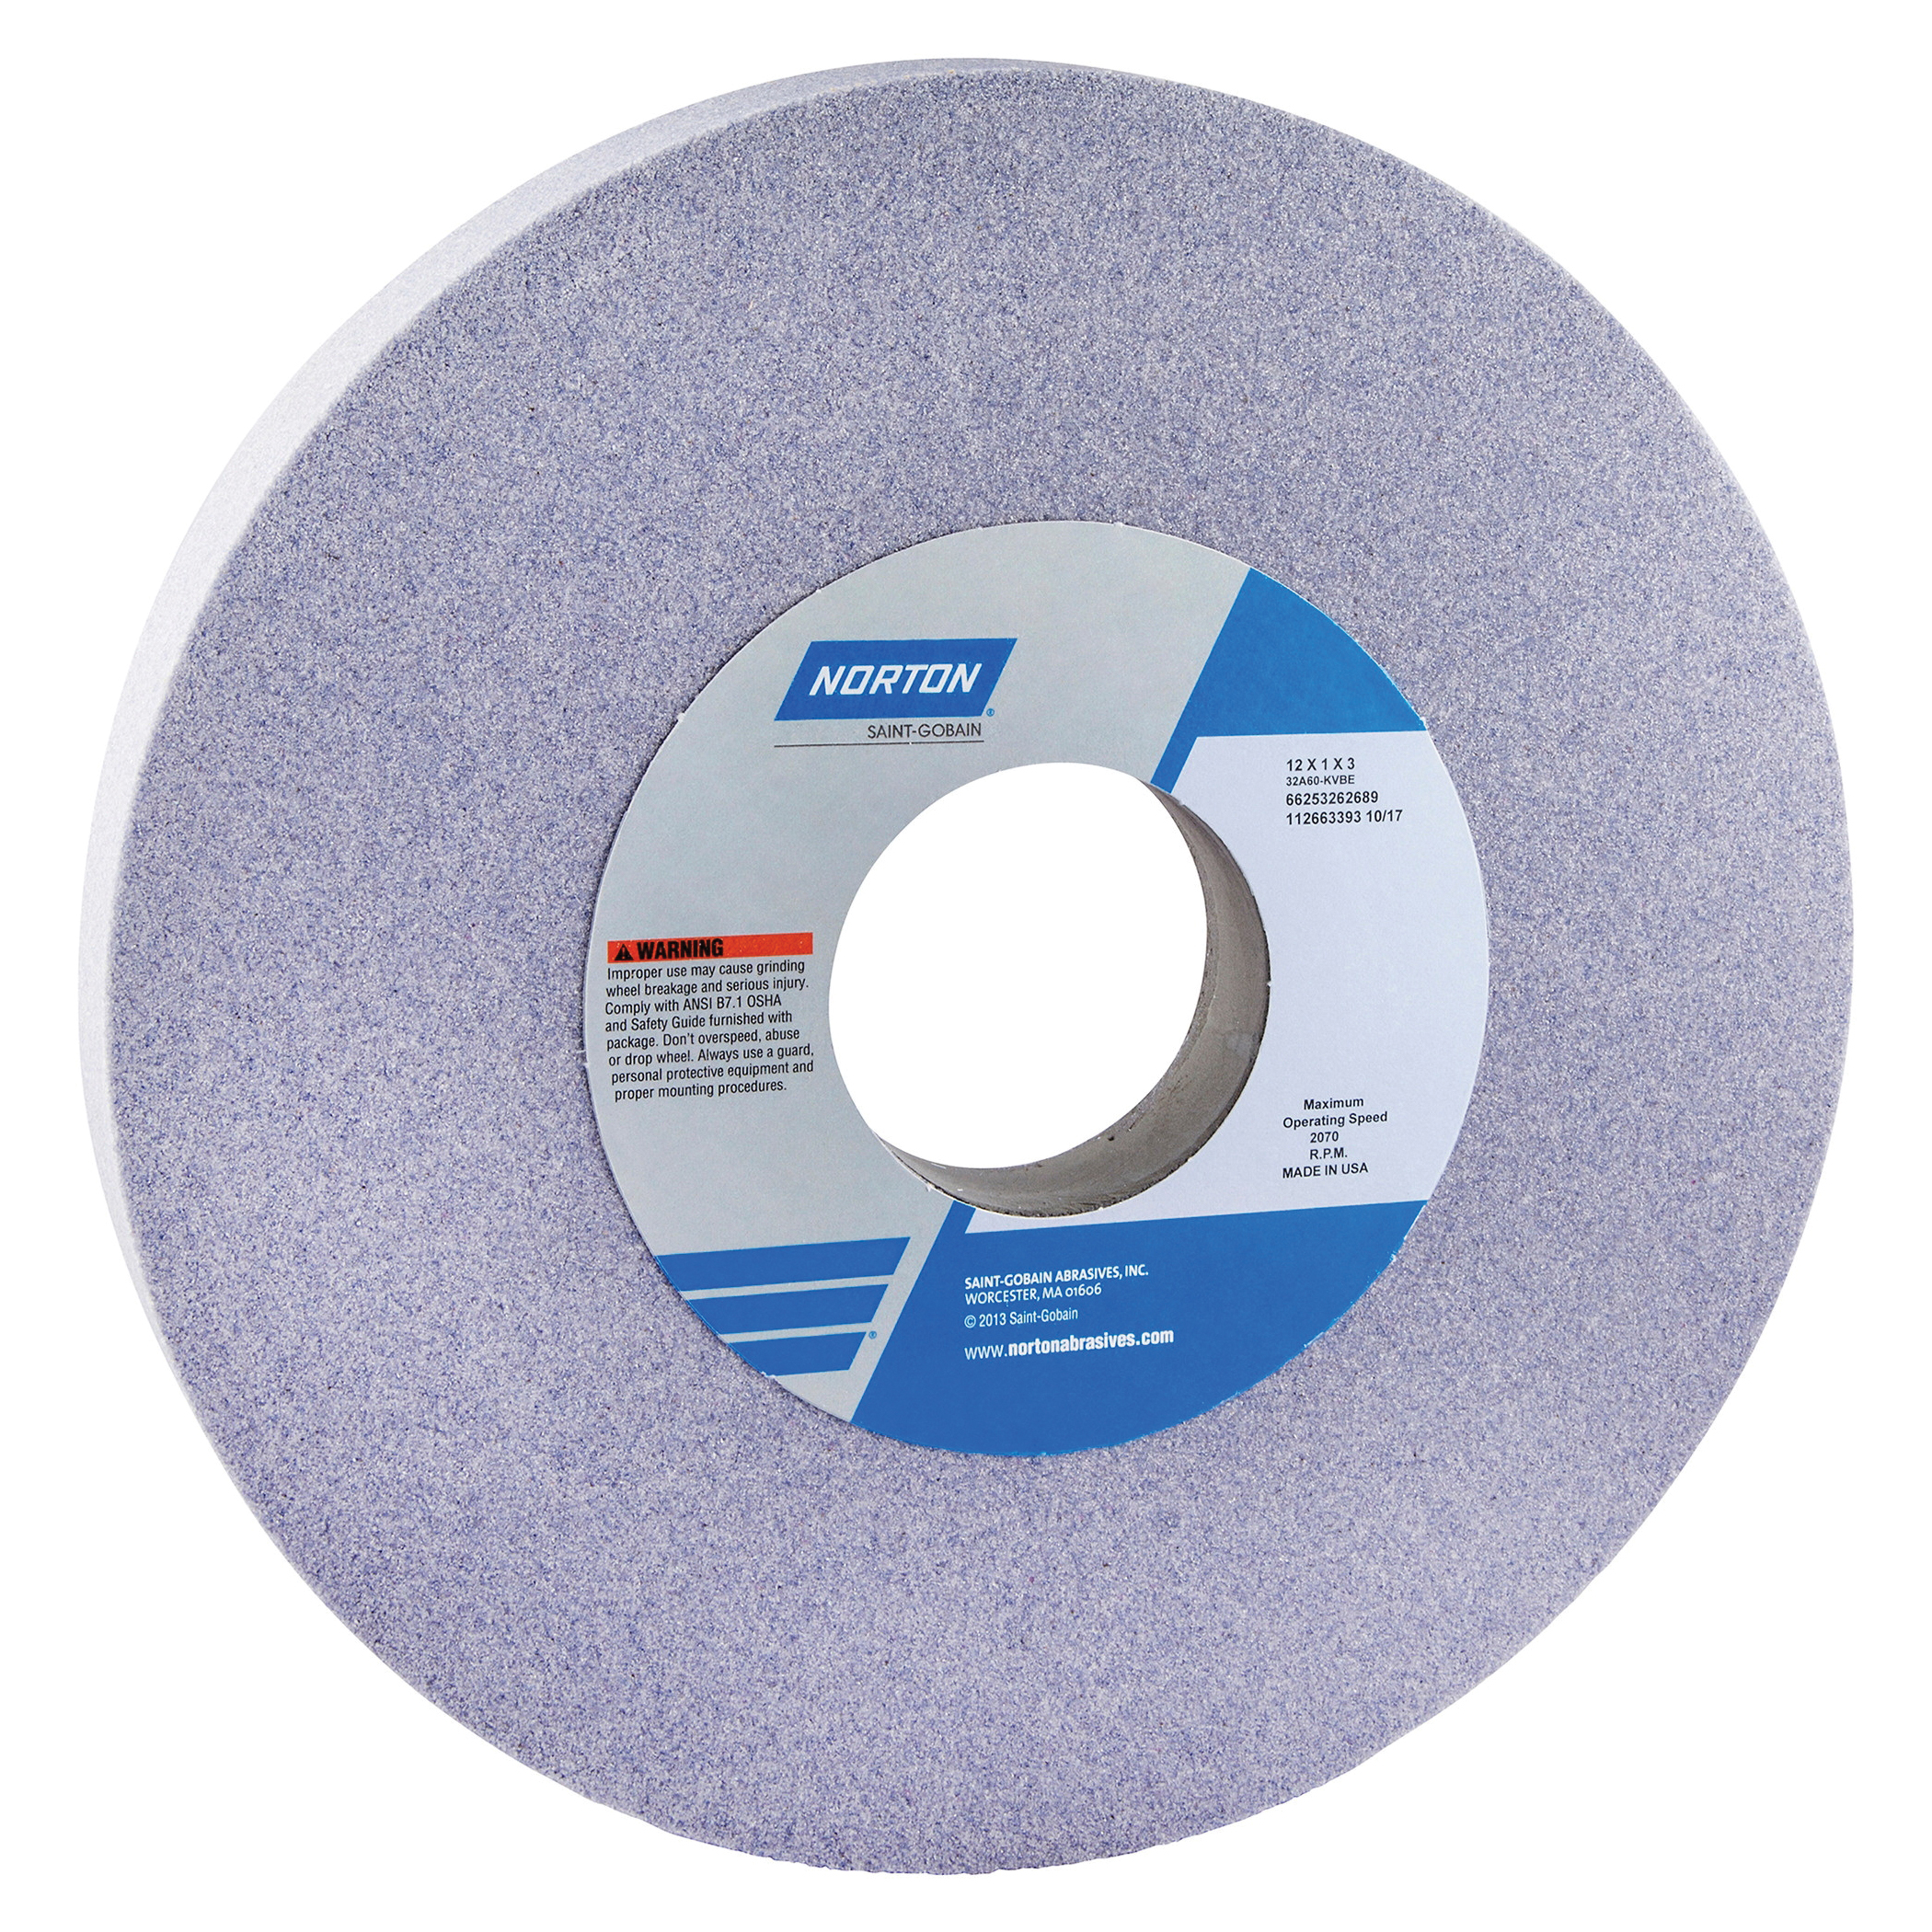 Norton® 66253262564 32A Straight Toolroom Wheel, 12 in Dia x 1 in THK, 3 in Center Hole, 46 Grit, Aluminum Oxide Abrasive